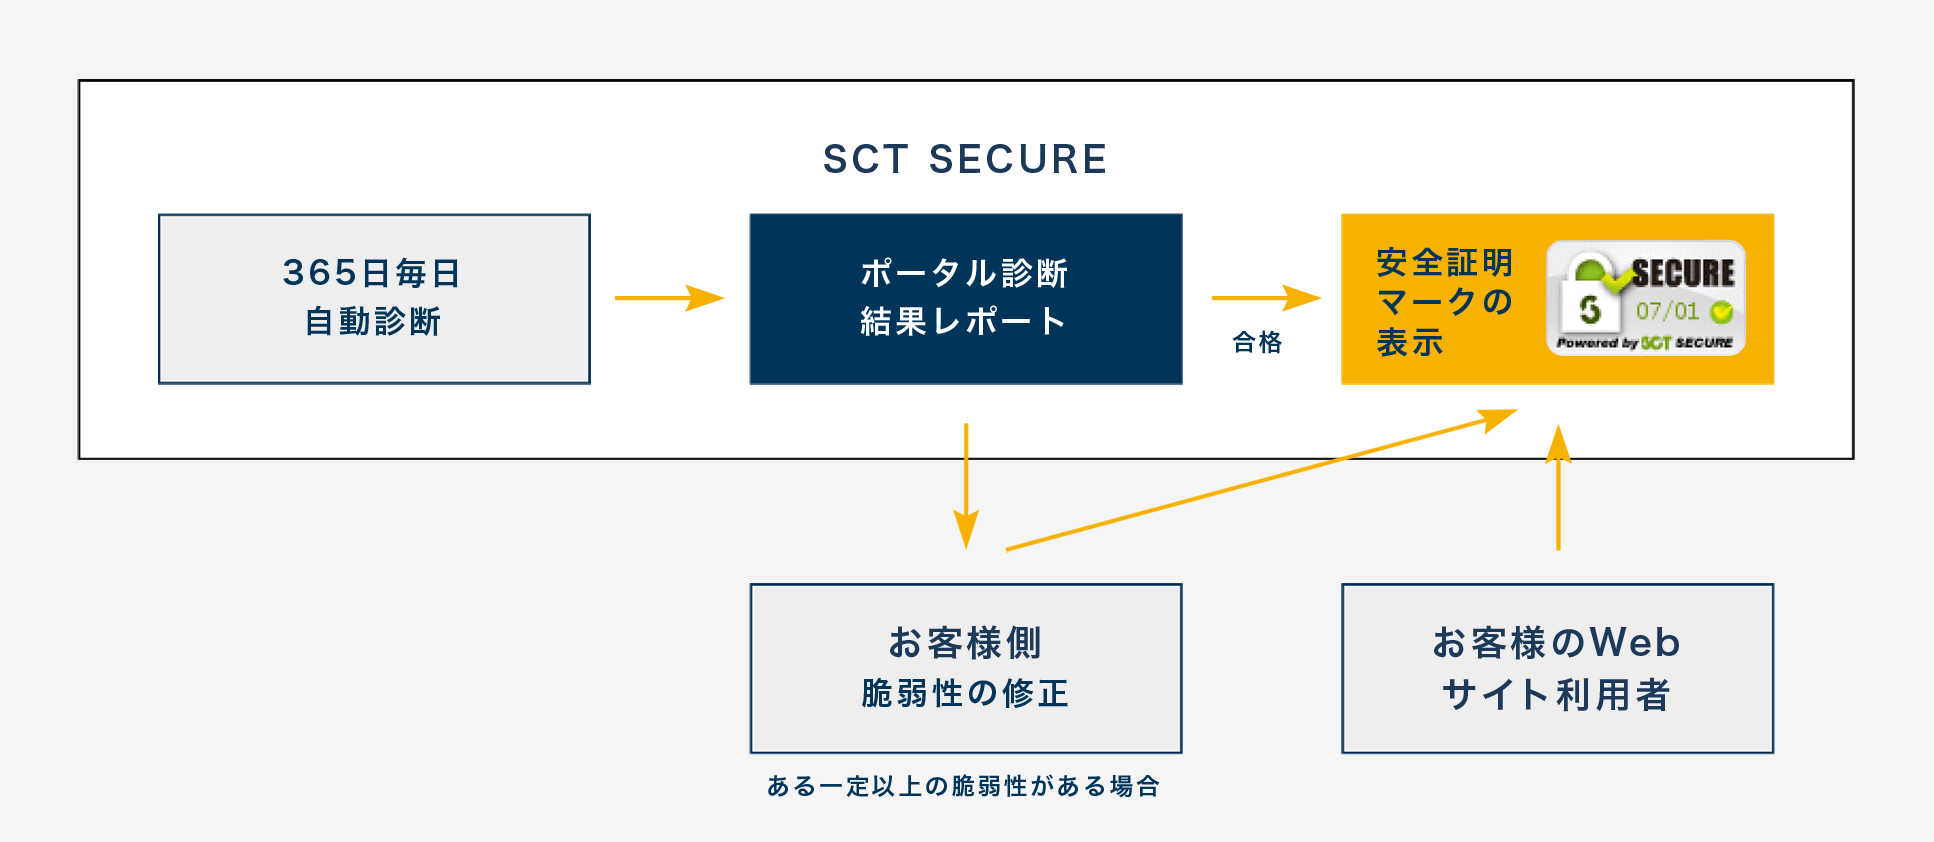 SCT SECURE LEVEL